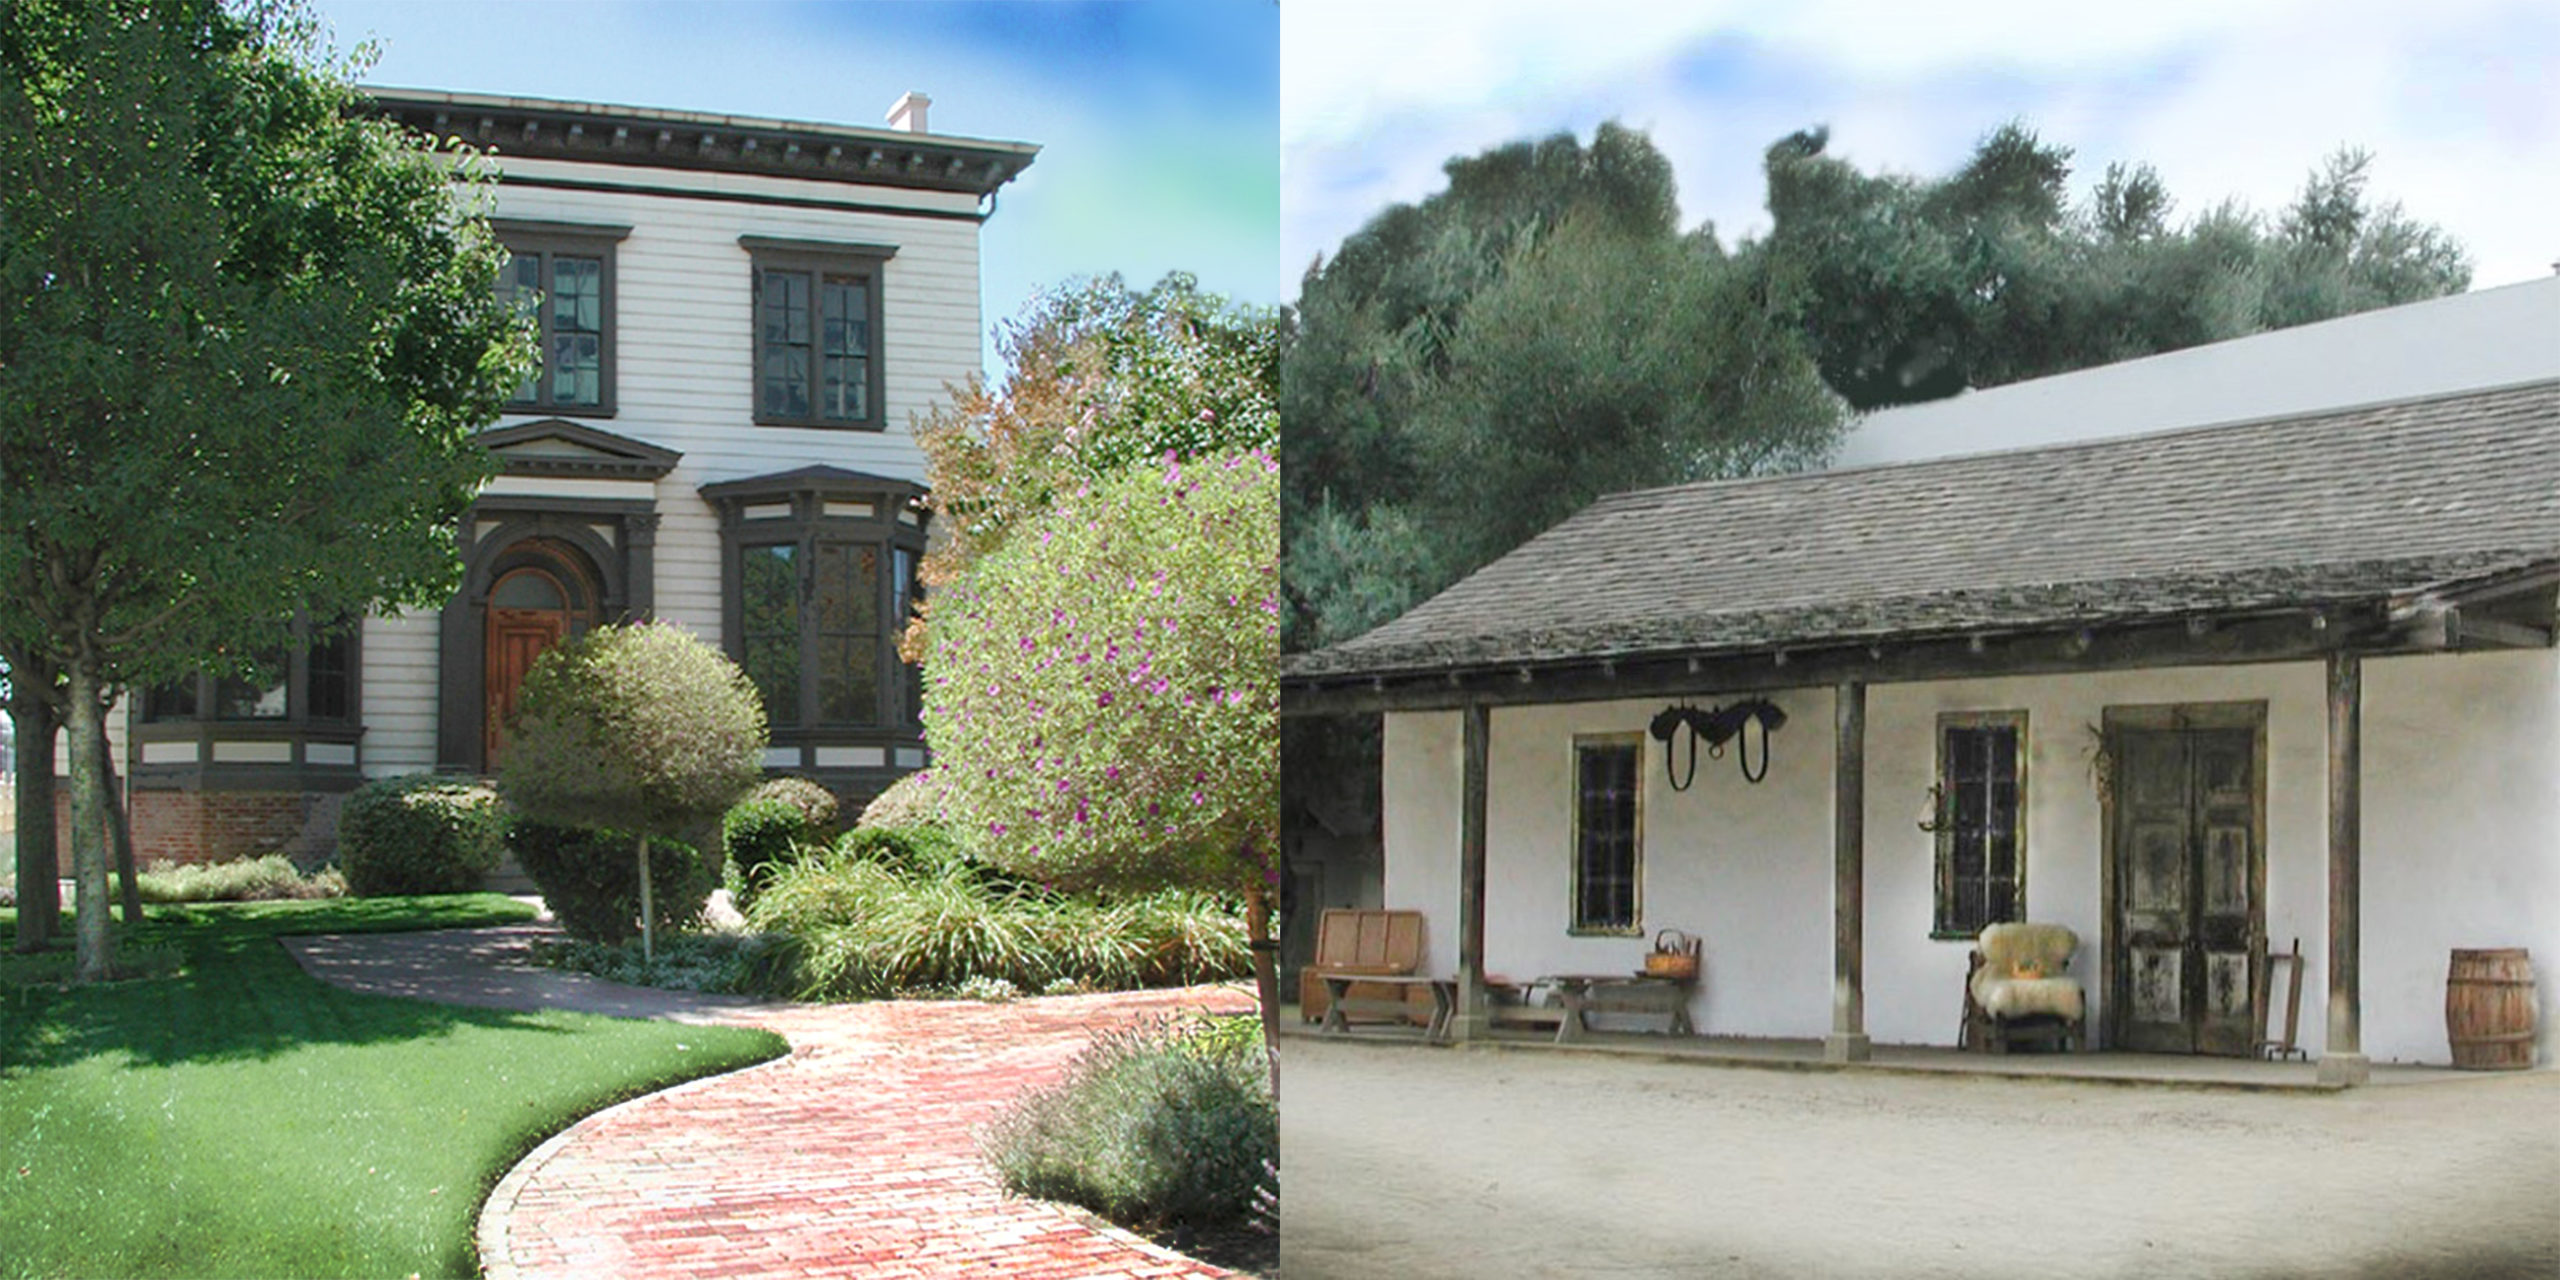 peralta adobe-fallon house tours